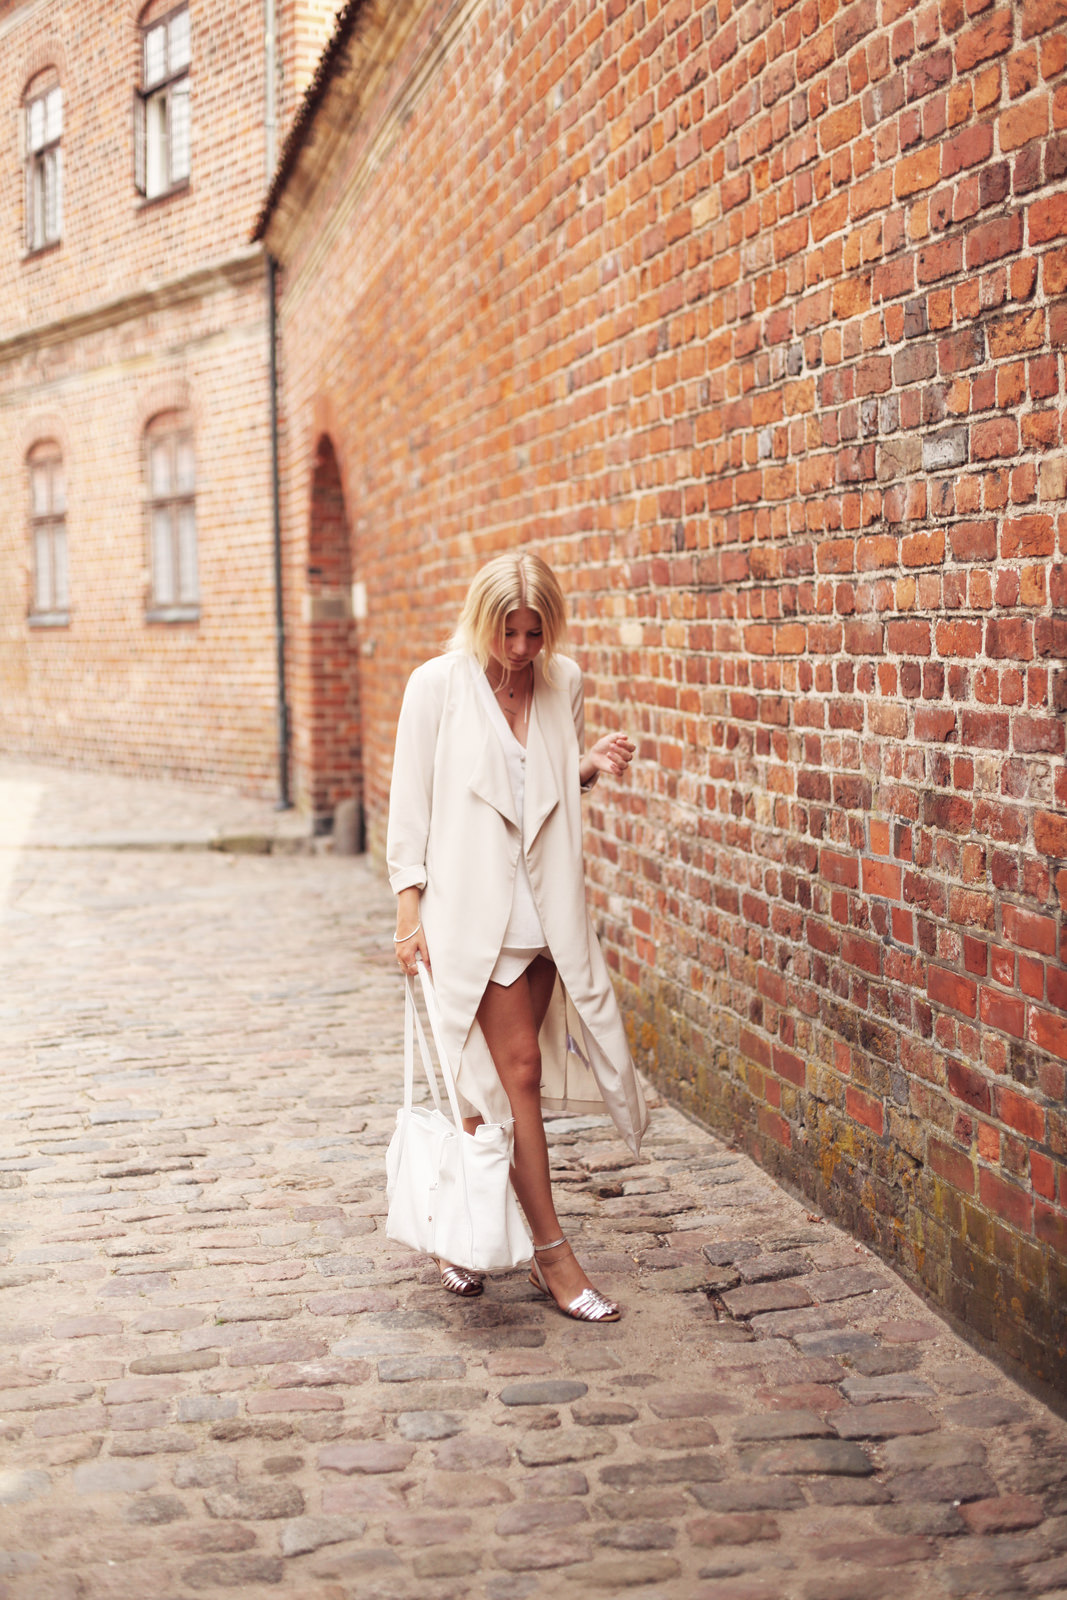 Camilla Ackley is wearing a white trench coat from Vero Moda, top from Mango, skirt and bag from Zara, sandals from Steve Madden